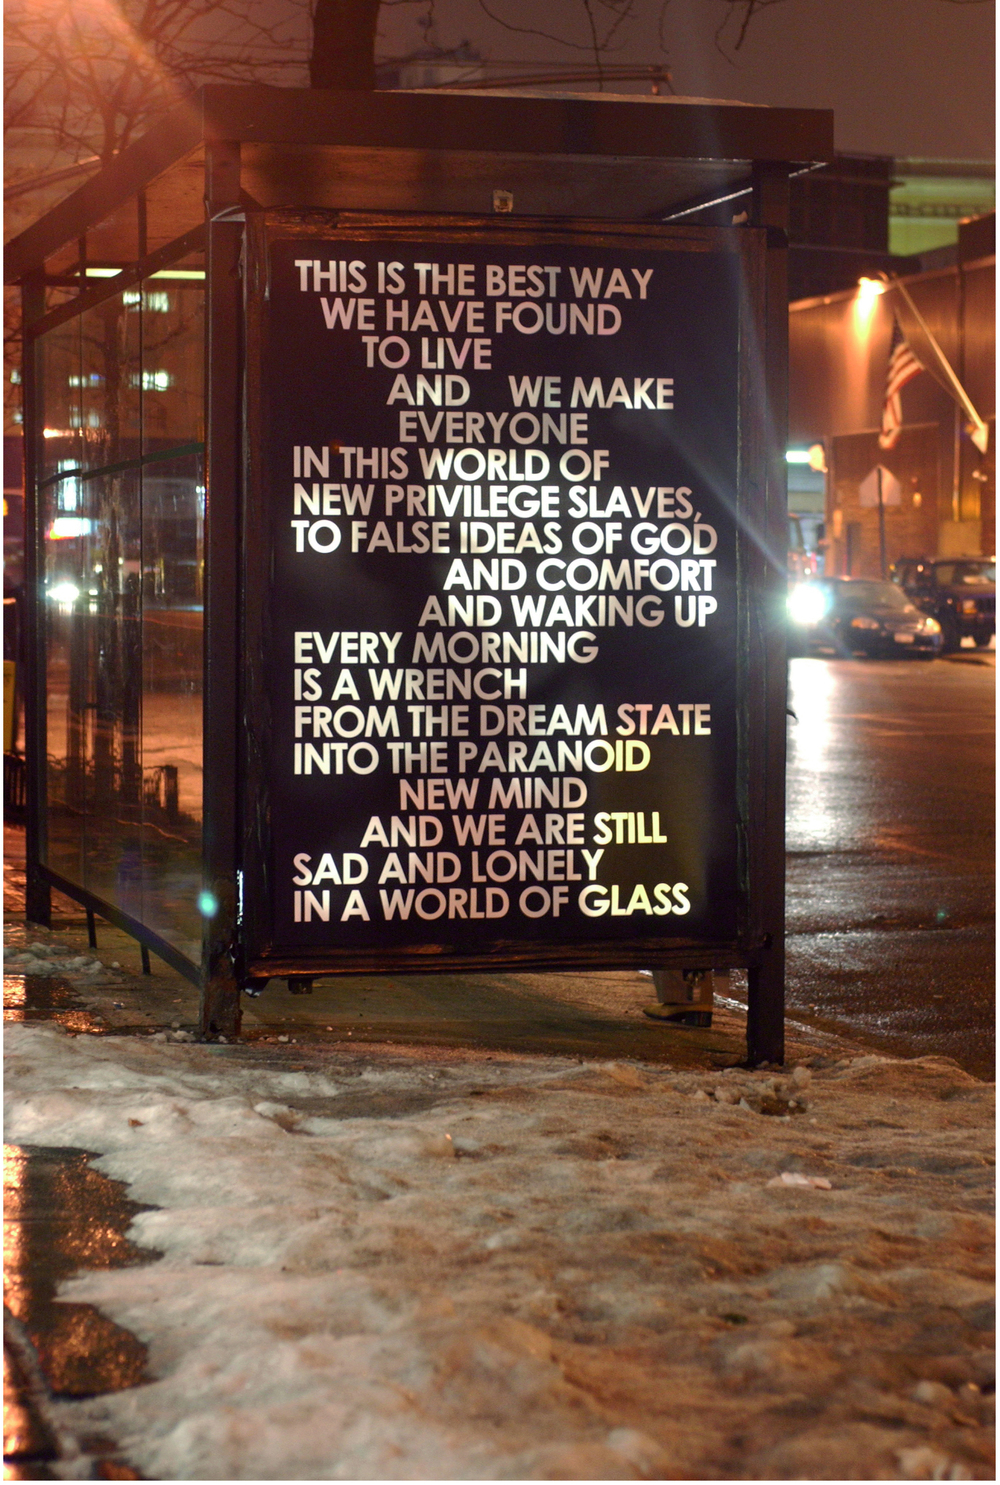 THIS IS THE BEST WAY, New York, 2006.jpg